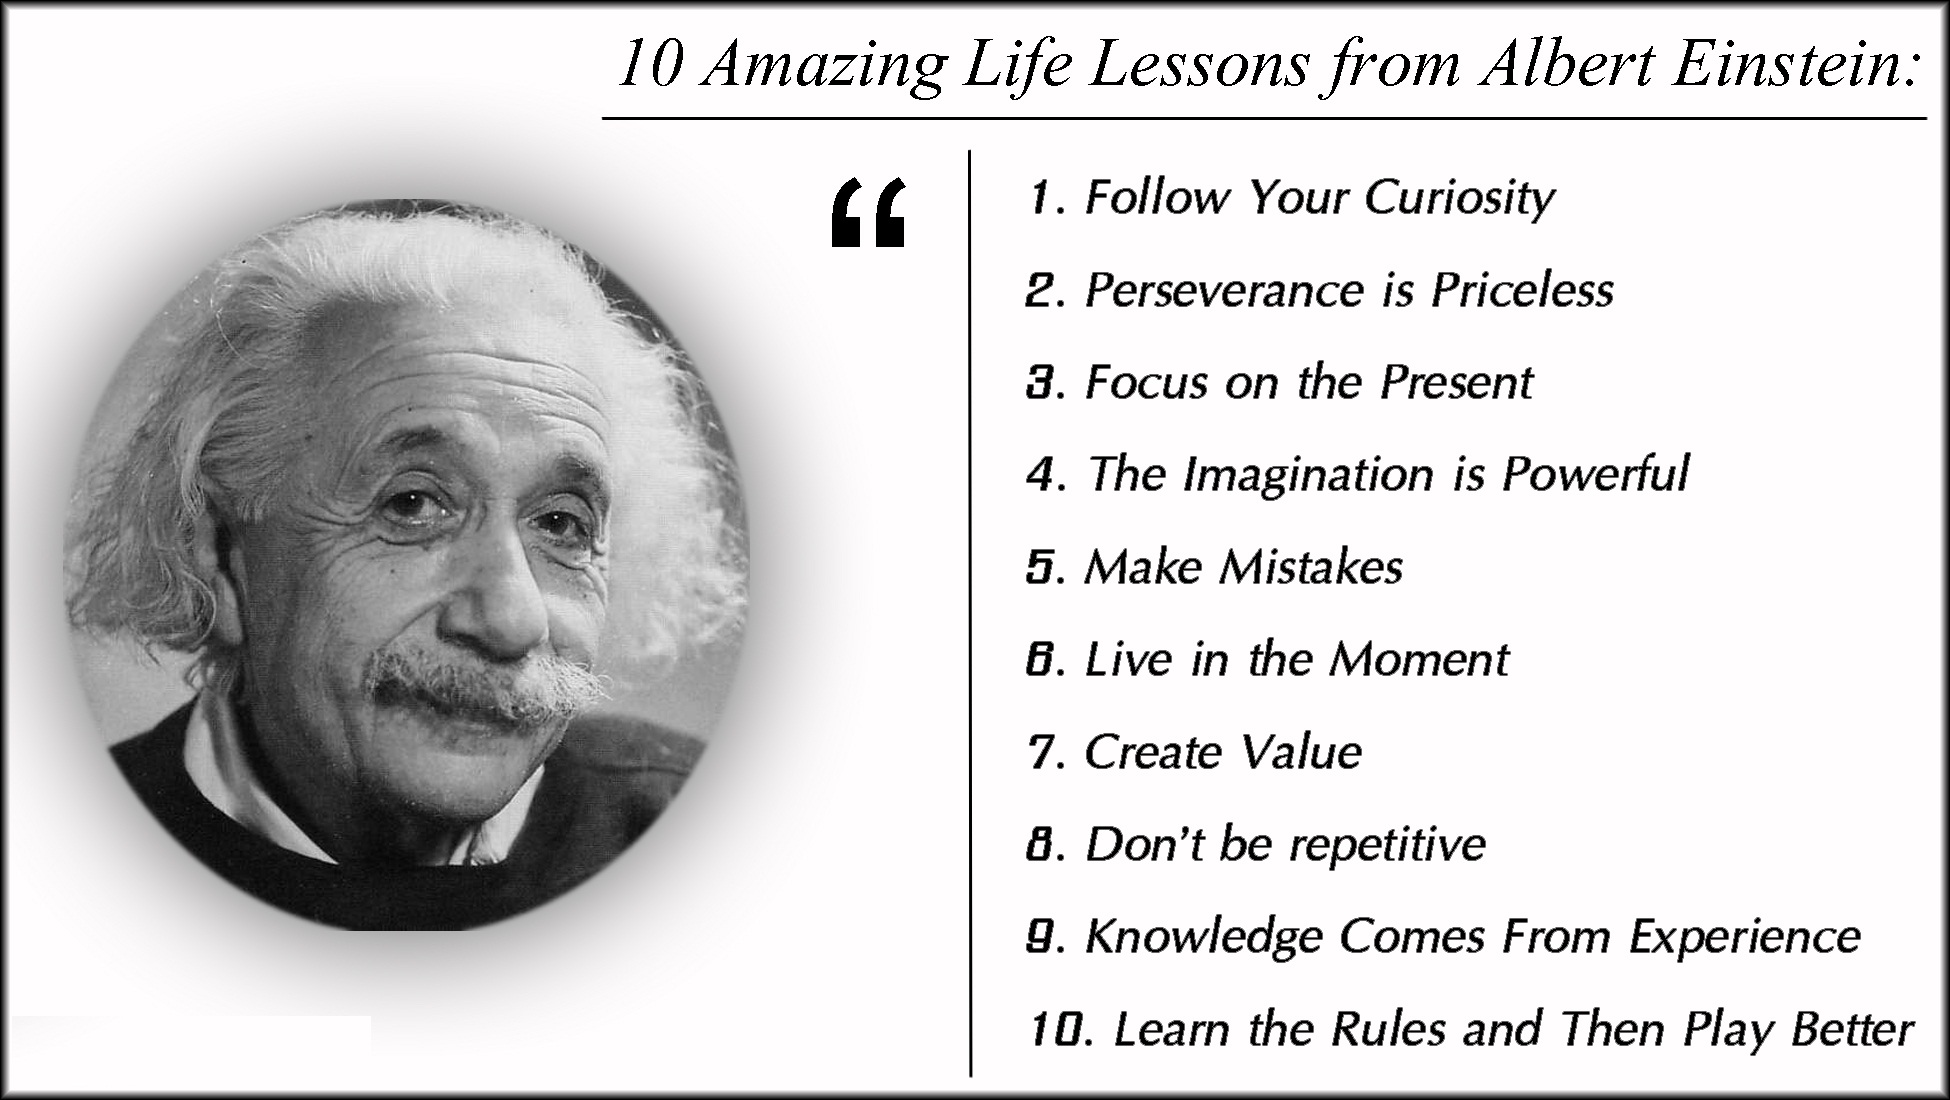 Amazing life lessons from Albert Einstein: Follow your curiosity, perseverance is priceless, focus on the present, the imagination is powerful, make mistakes, live in the moment, create value, don't be repetitive, knowledge comes from experience, learn the rules and then play better.